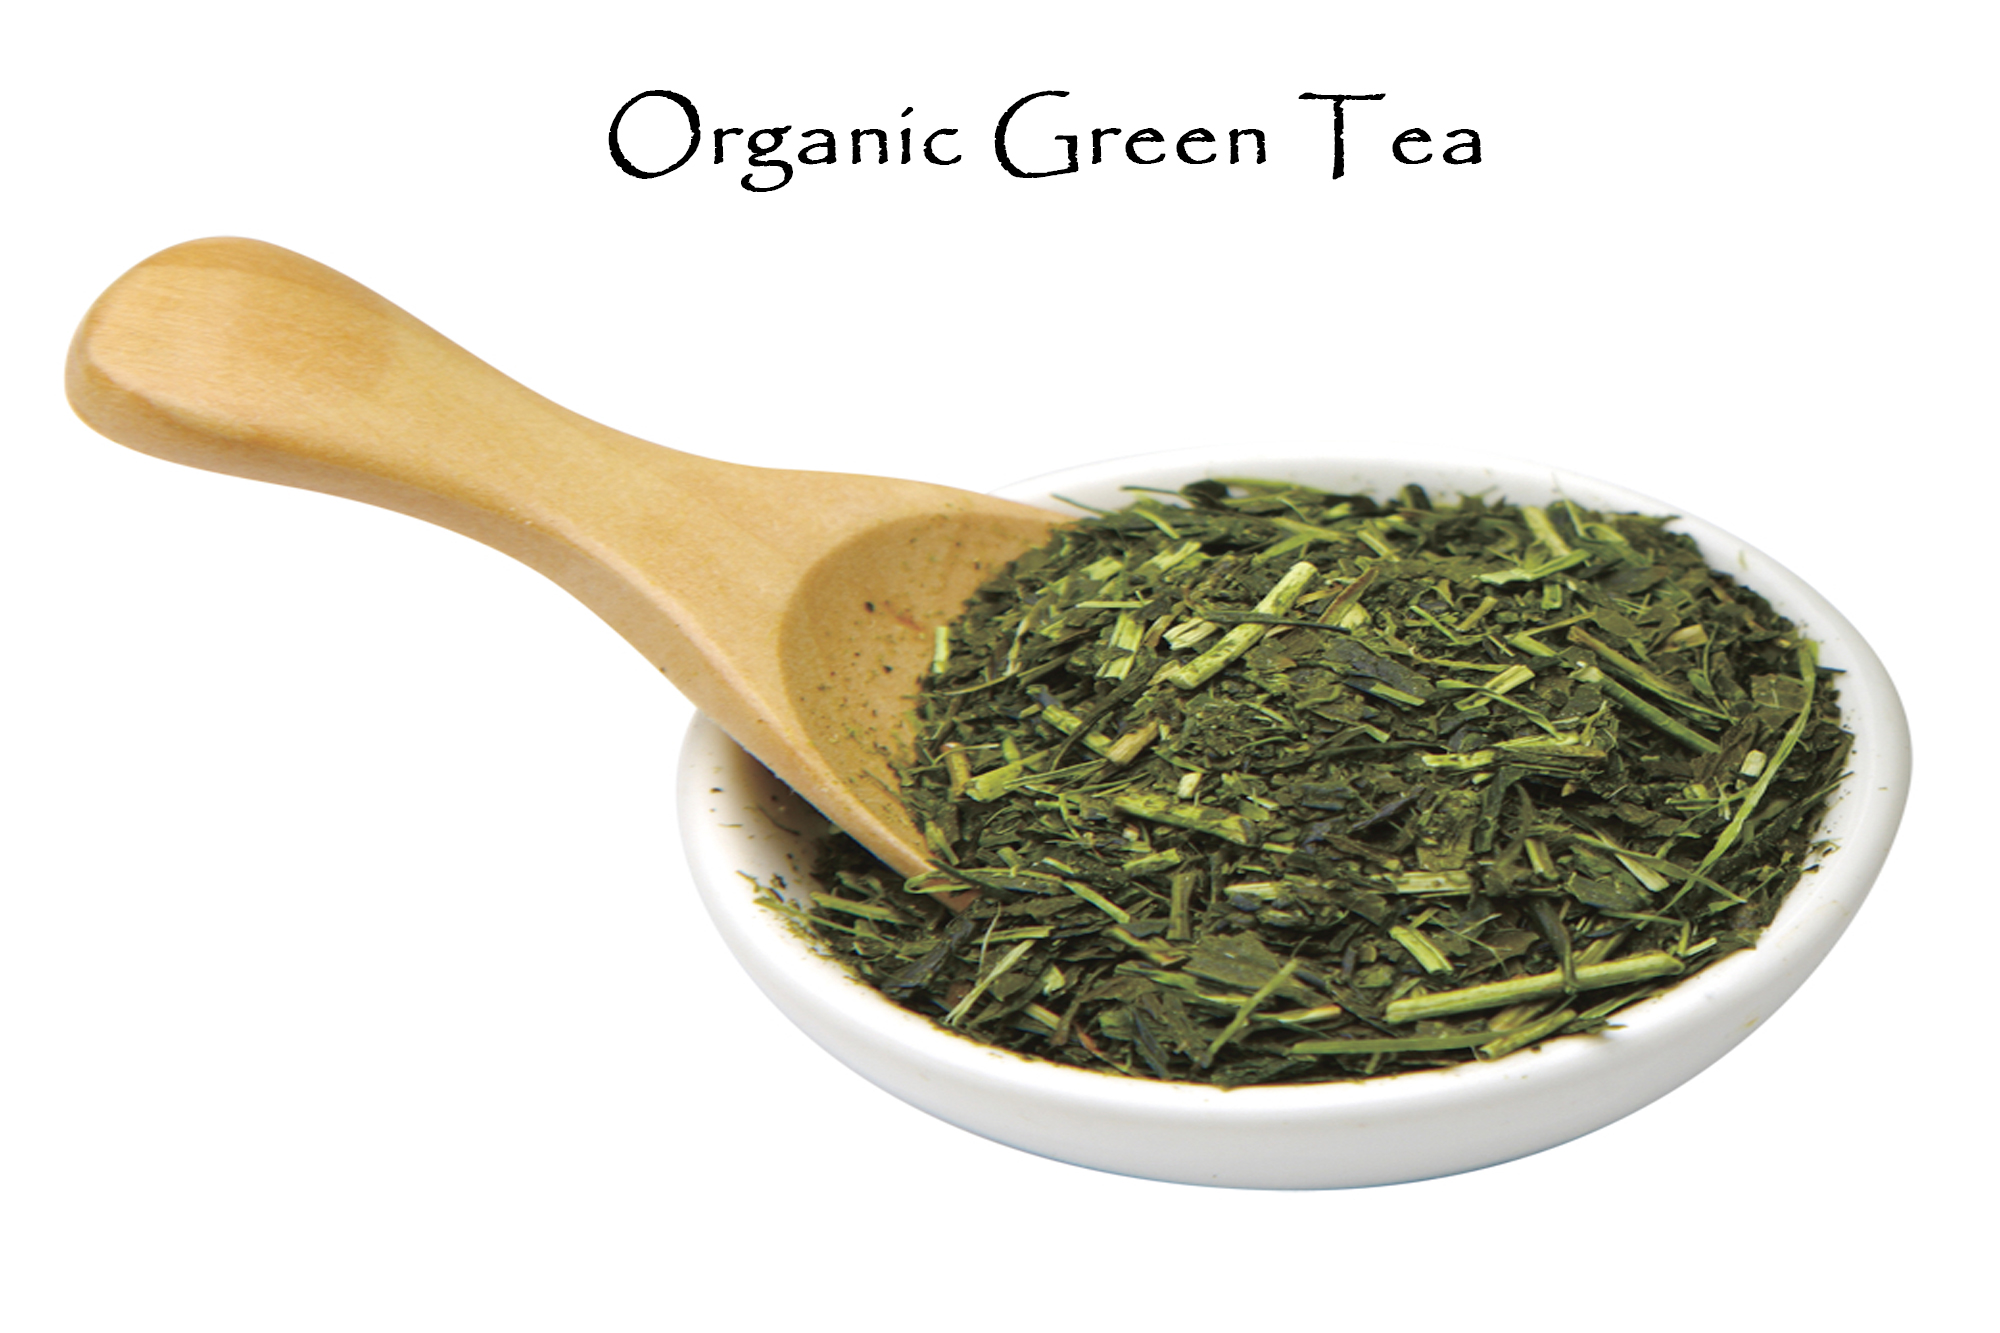 Green Tea is a powerful topical antioxidant thatcalms sensitive/reactive skin , promotes skin cell regeneration , and fights free radical damage which is vital to keeping skin looking young.